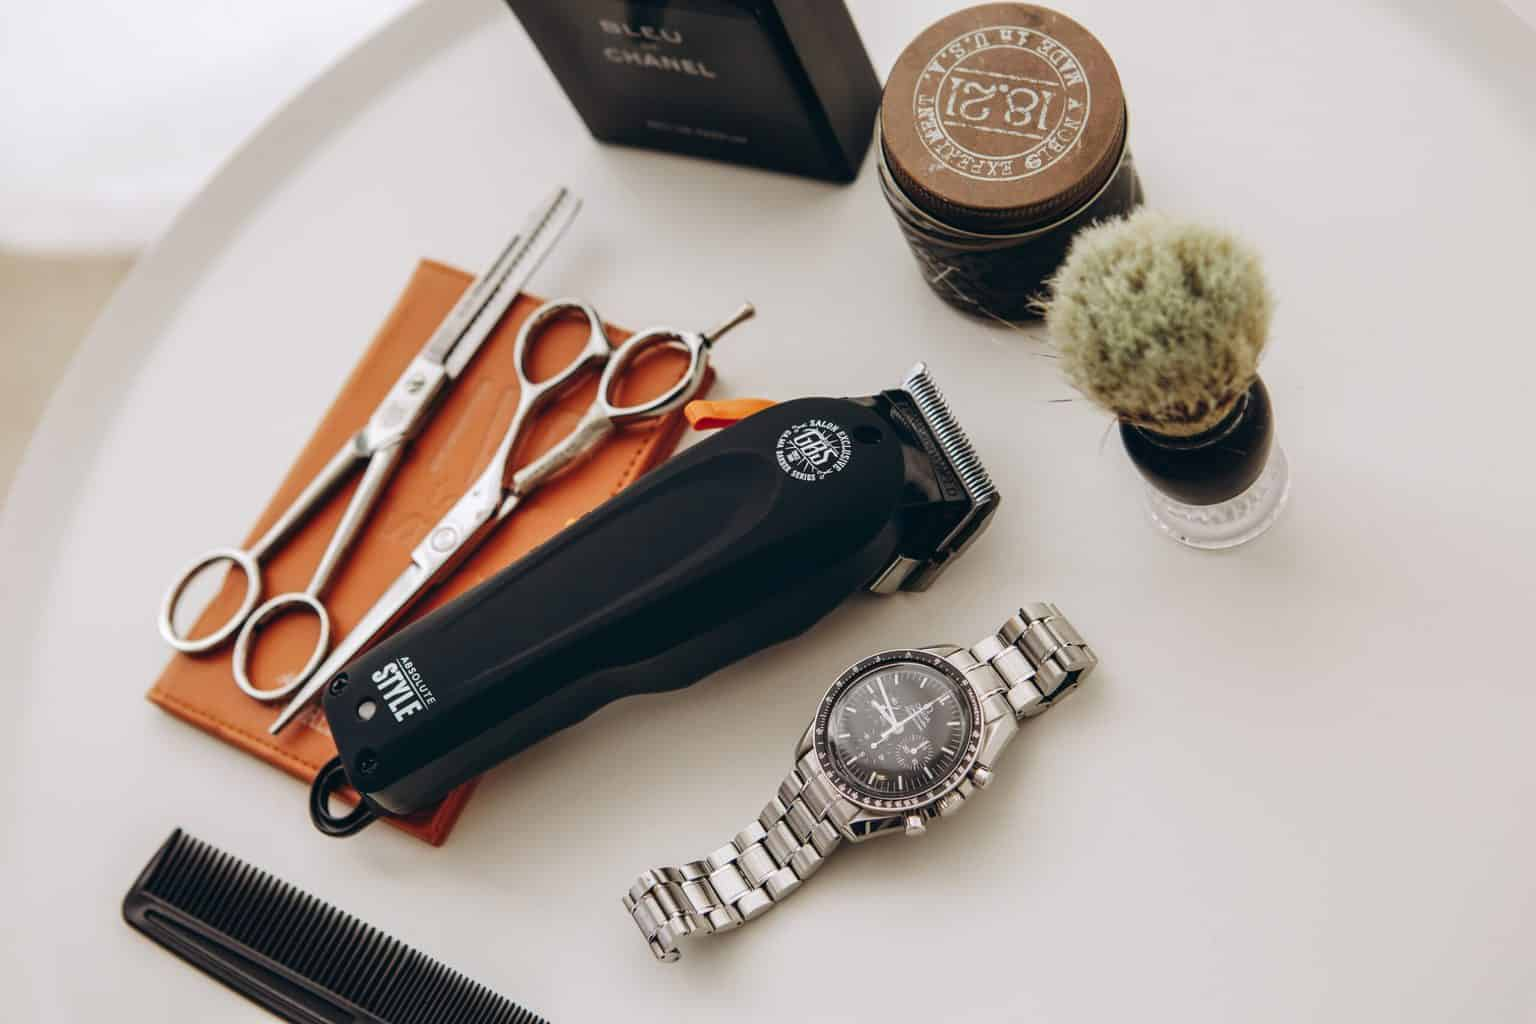 A barber's set for cutting and styling hair